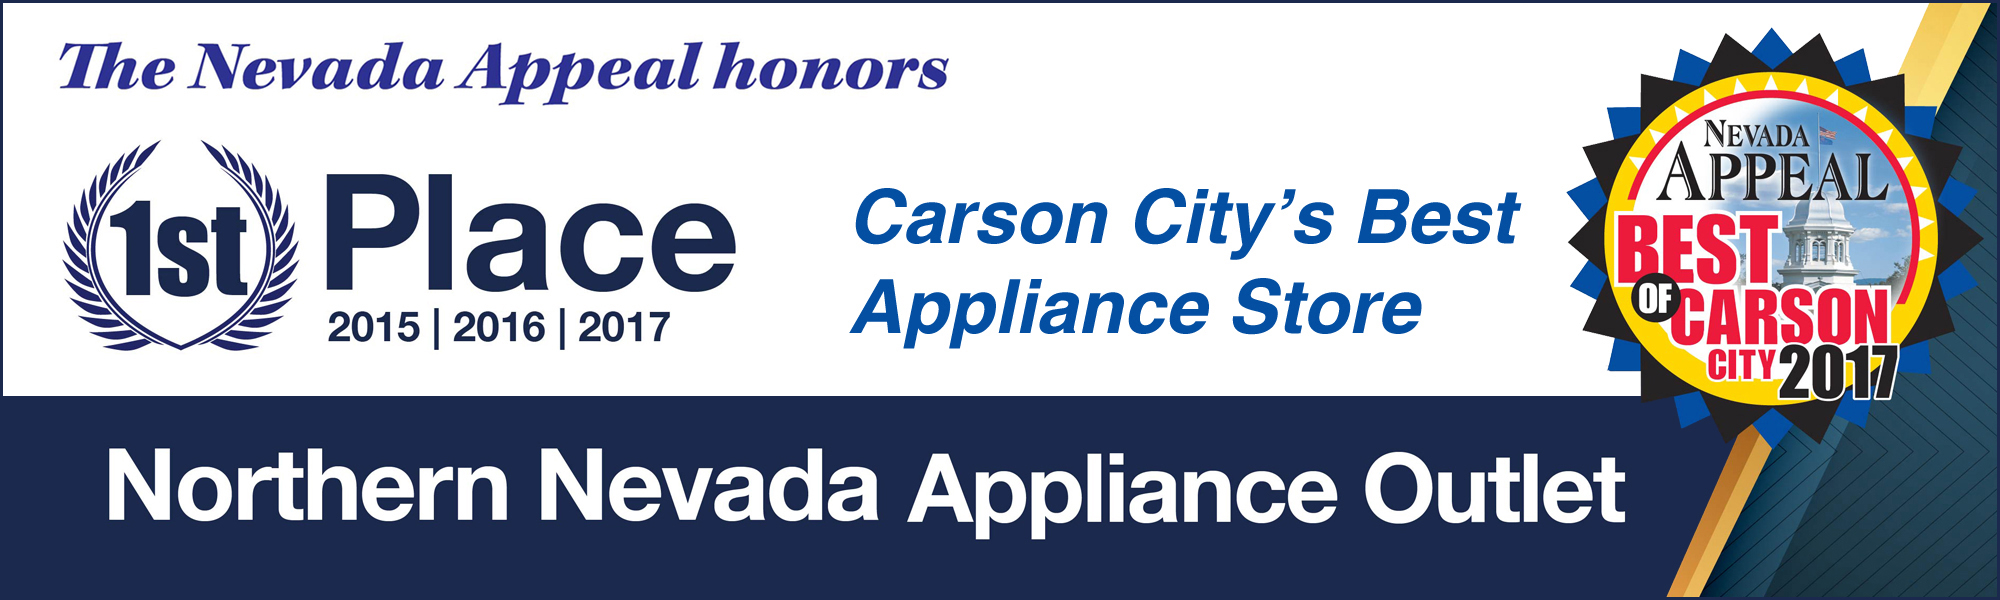 Carson City's Best Appliance Store